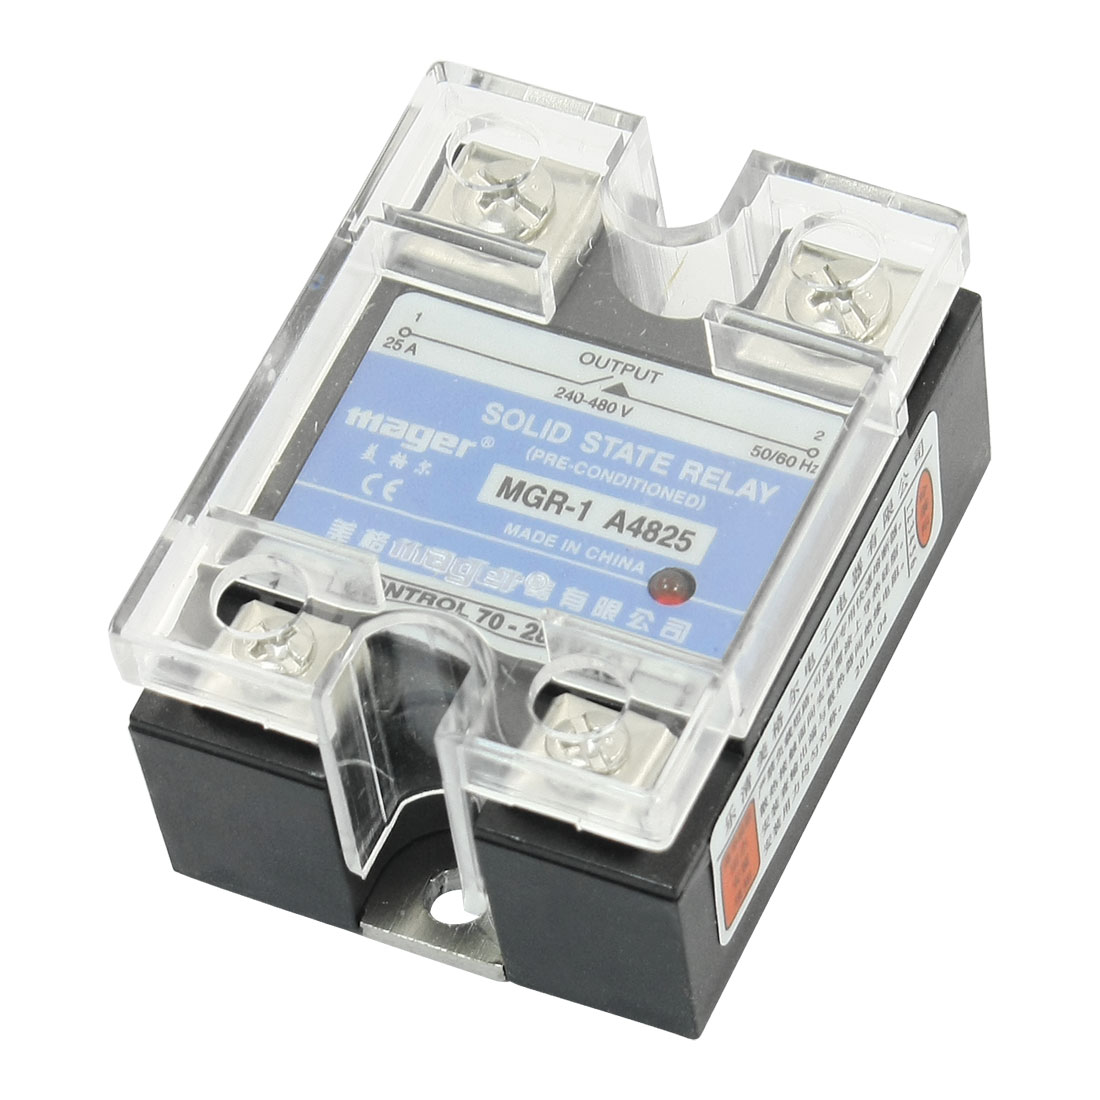 MGR-1 A4825 240-480V 25A AC to AC Solid State Module Relay w Clear Cover